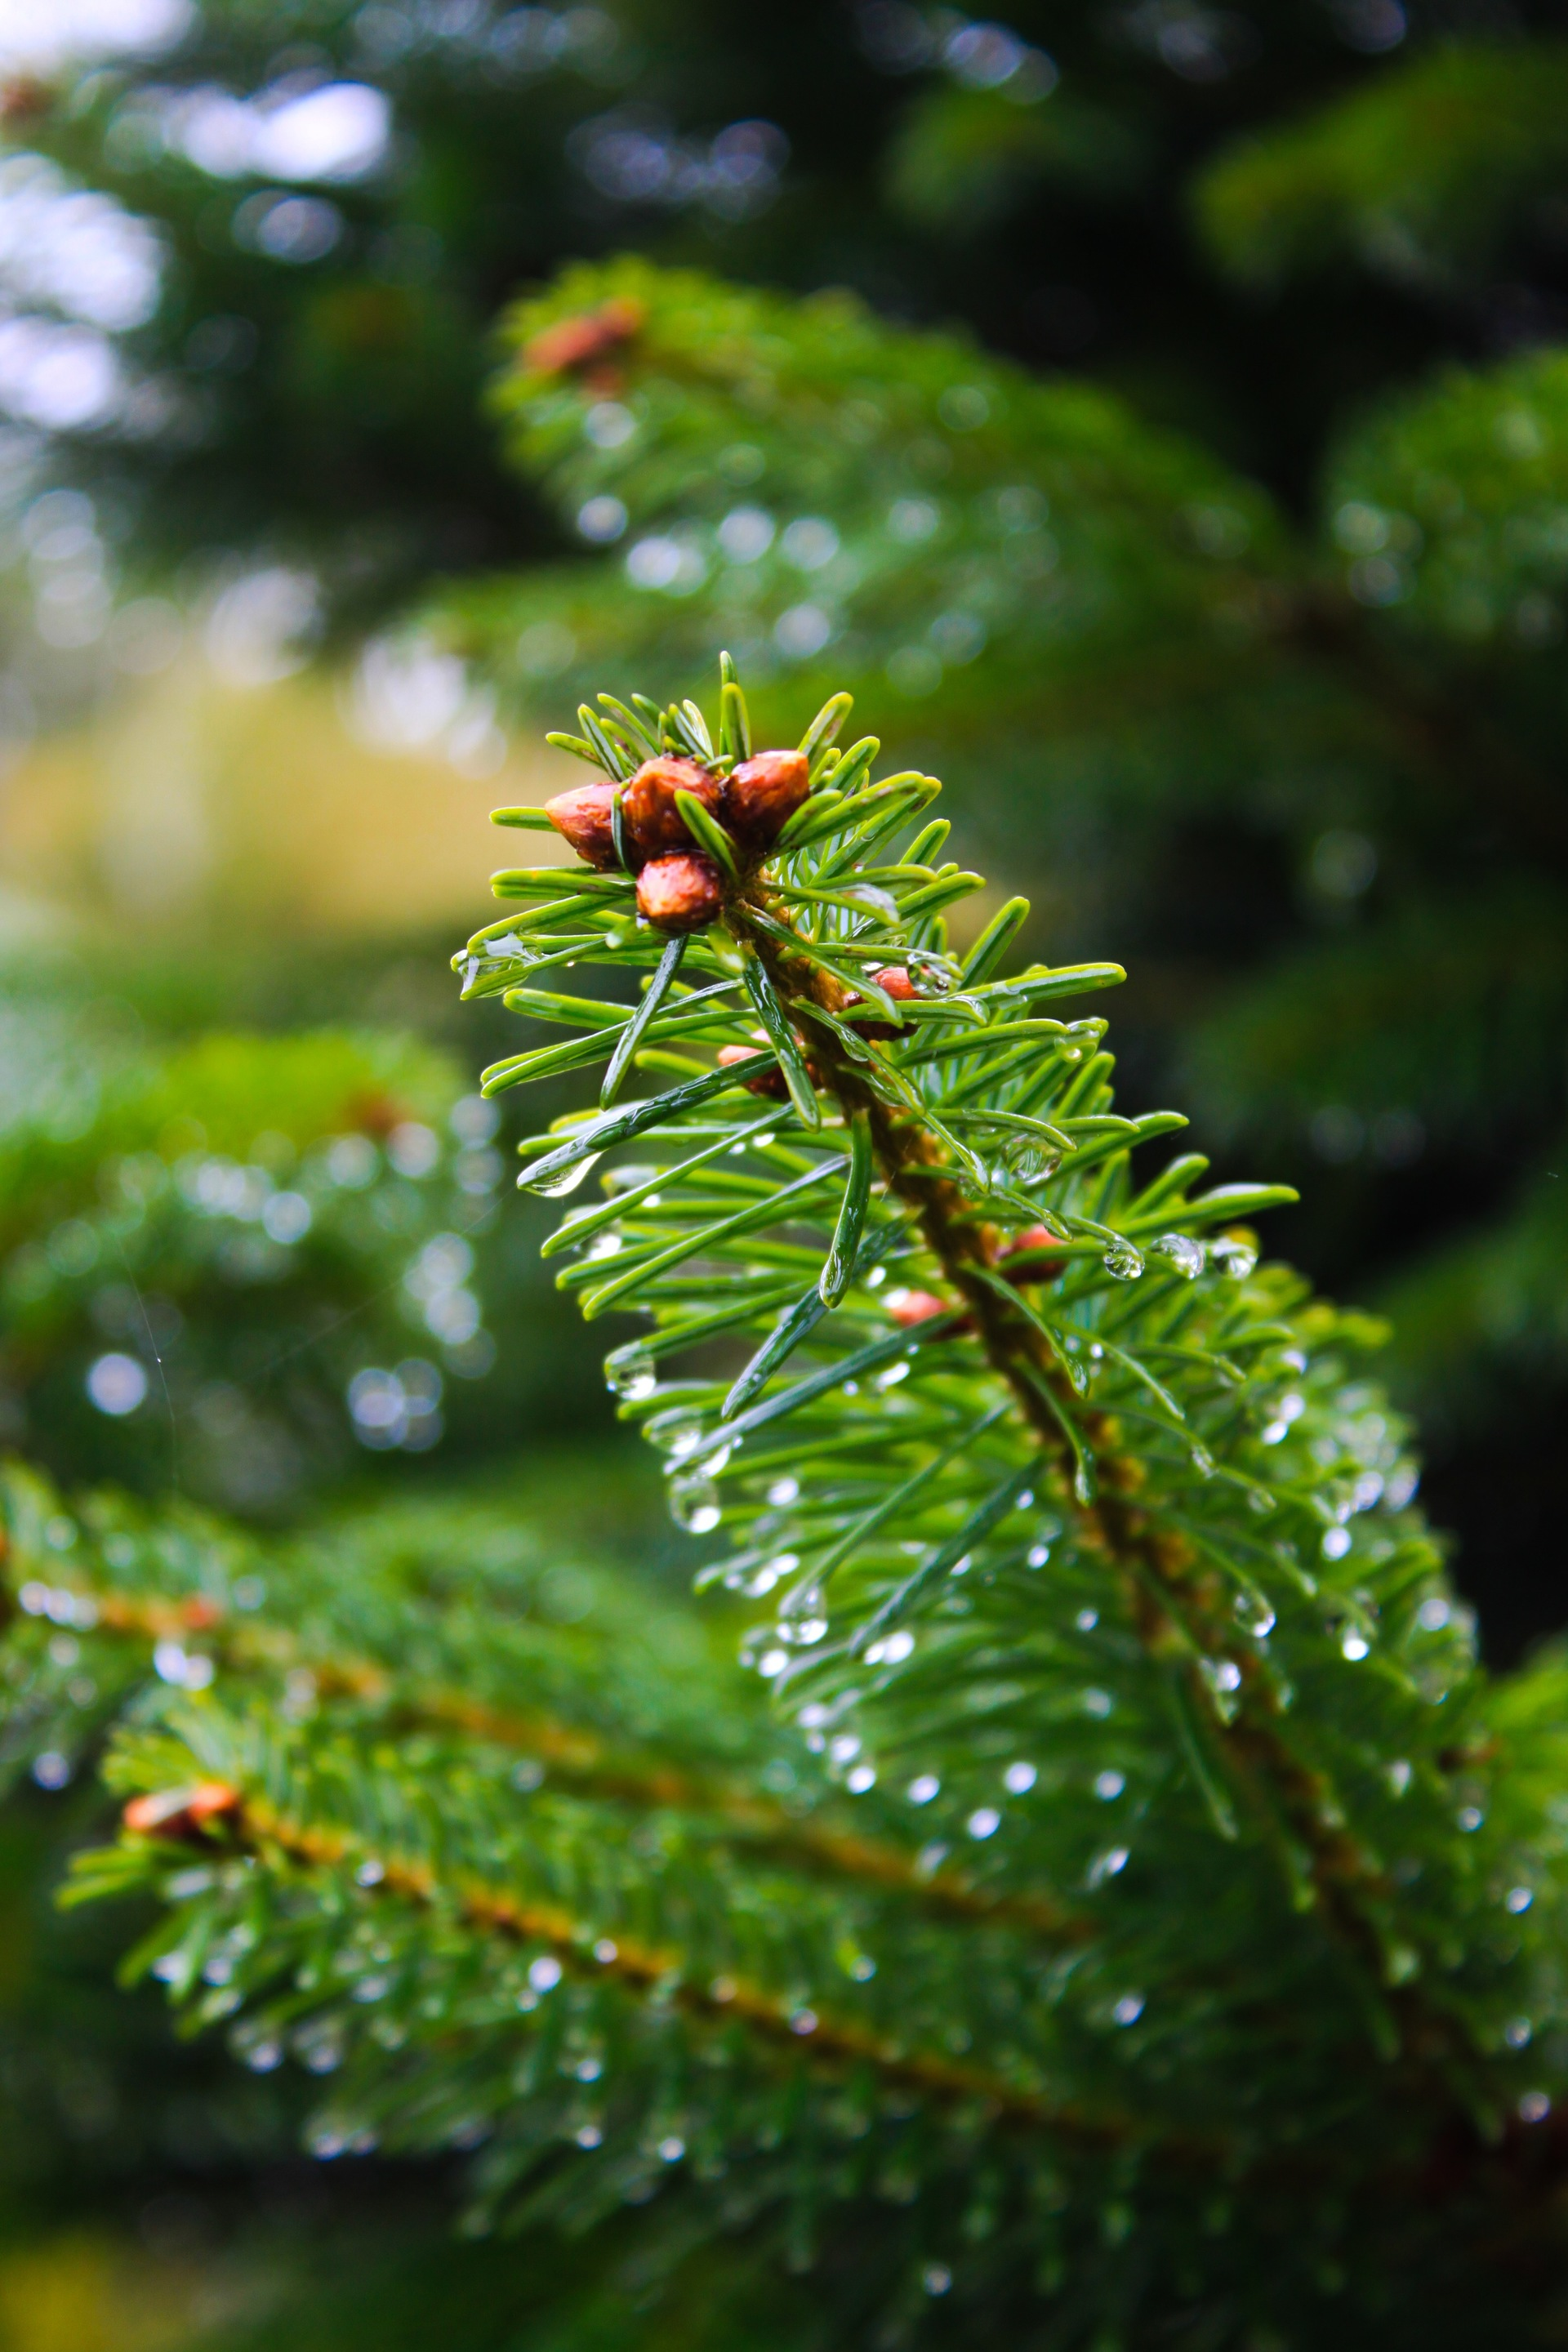 Close-up of a pine tree branch